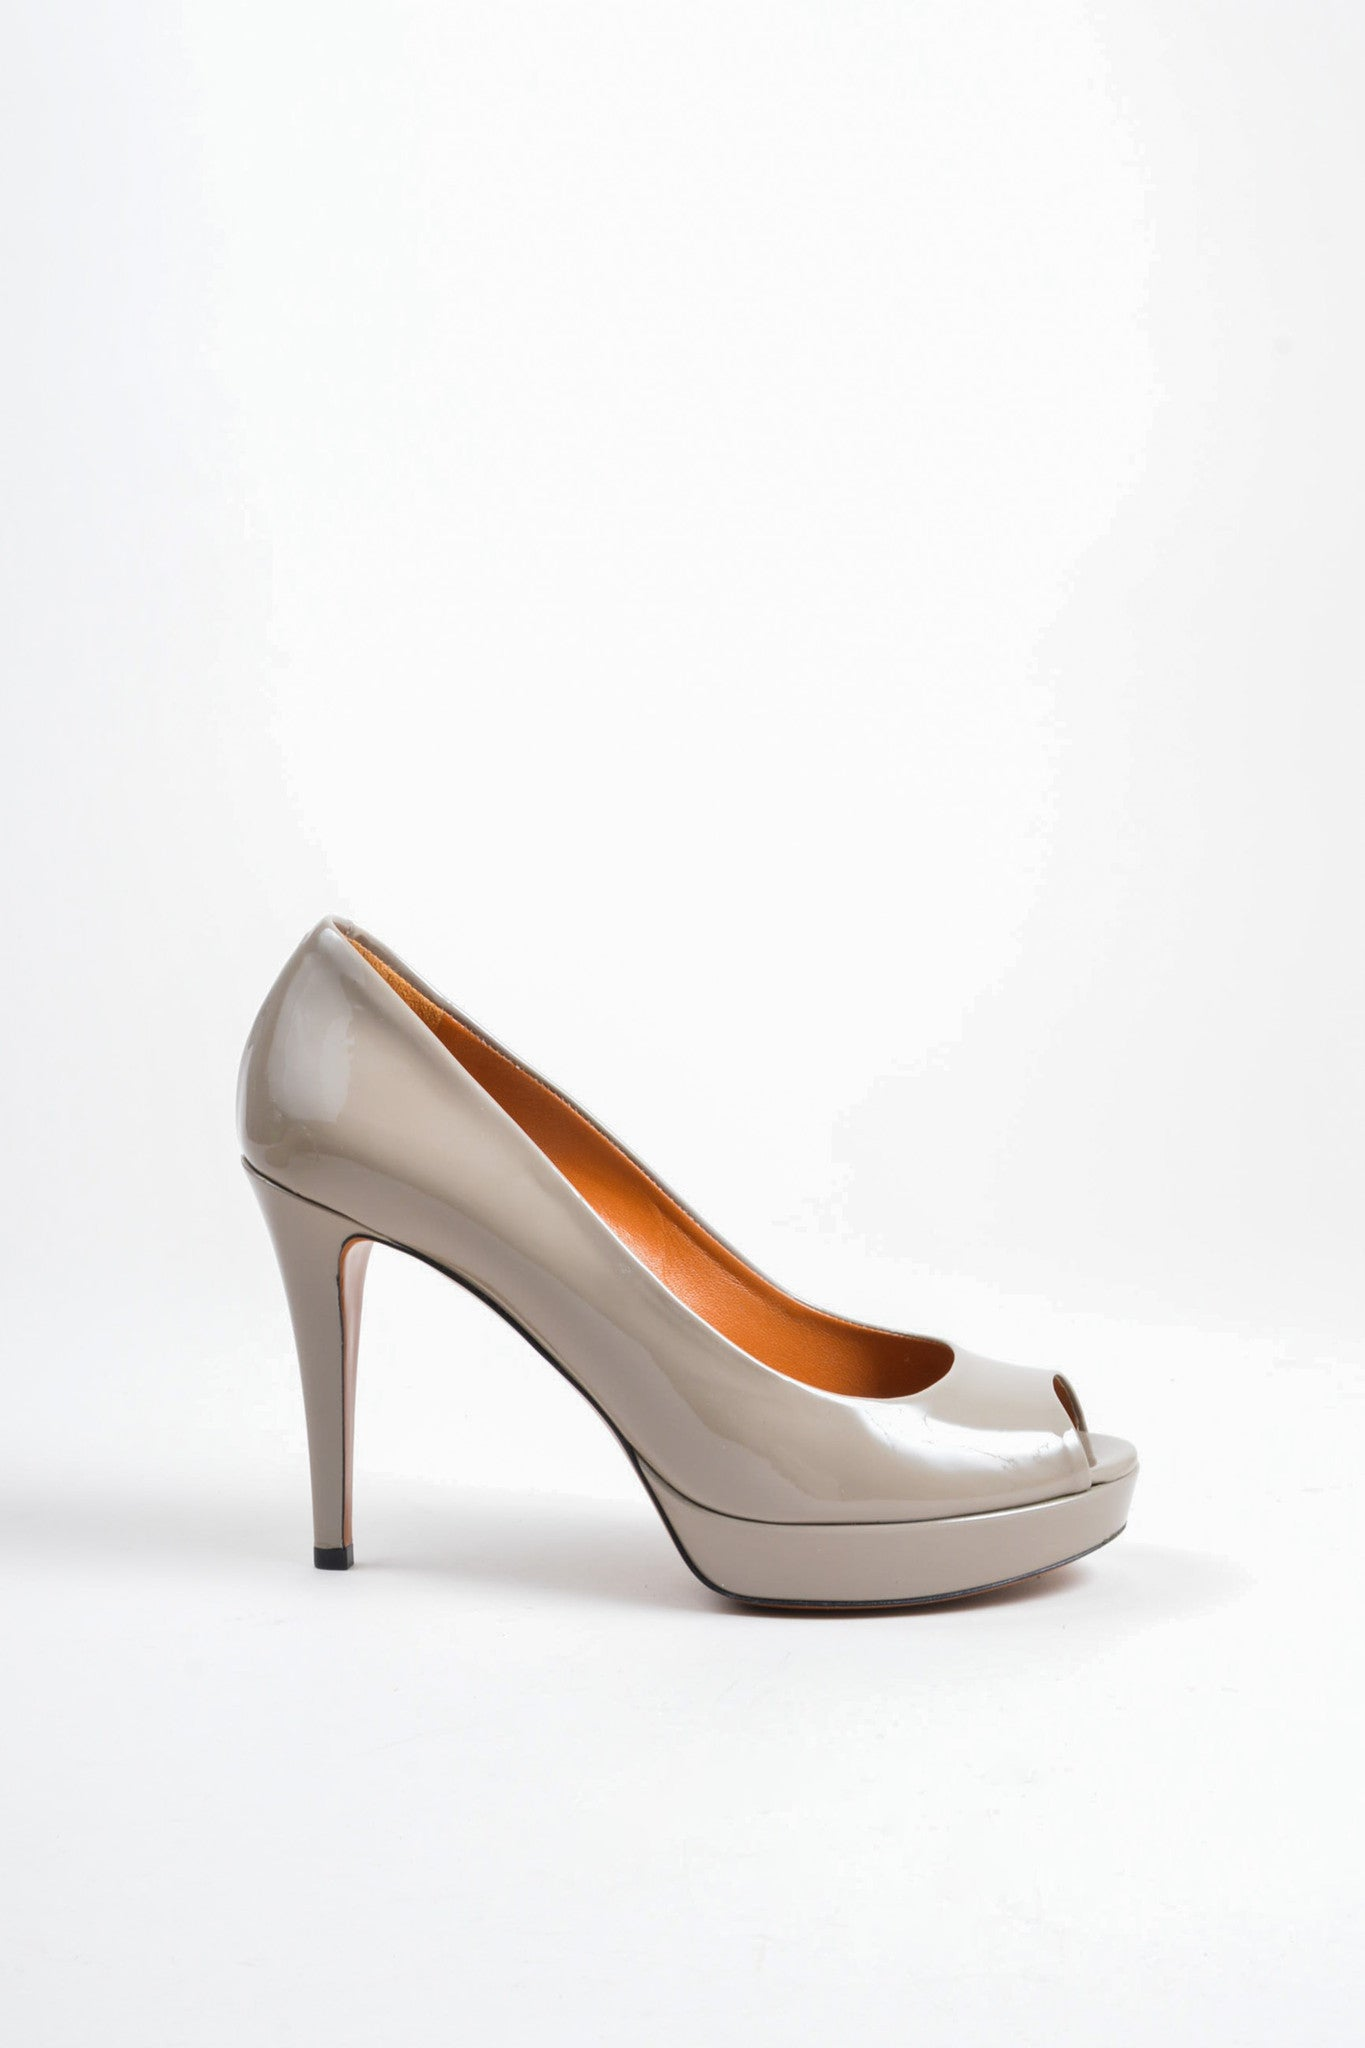 Grey Gucci Patent Leather Platform Peep Toe Pumps Sideview